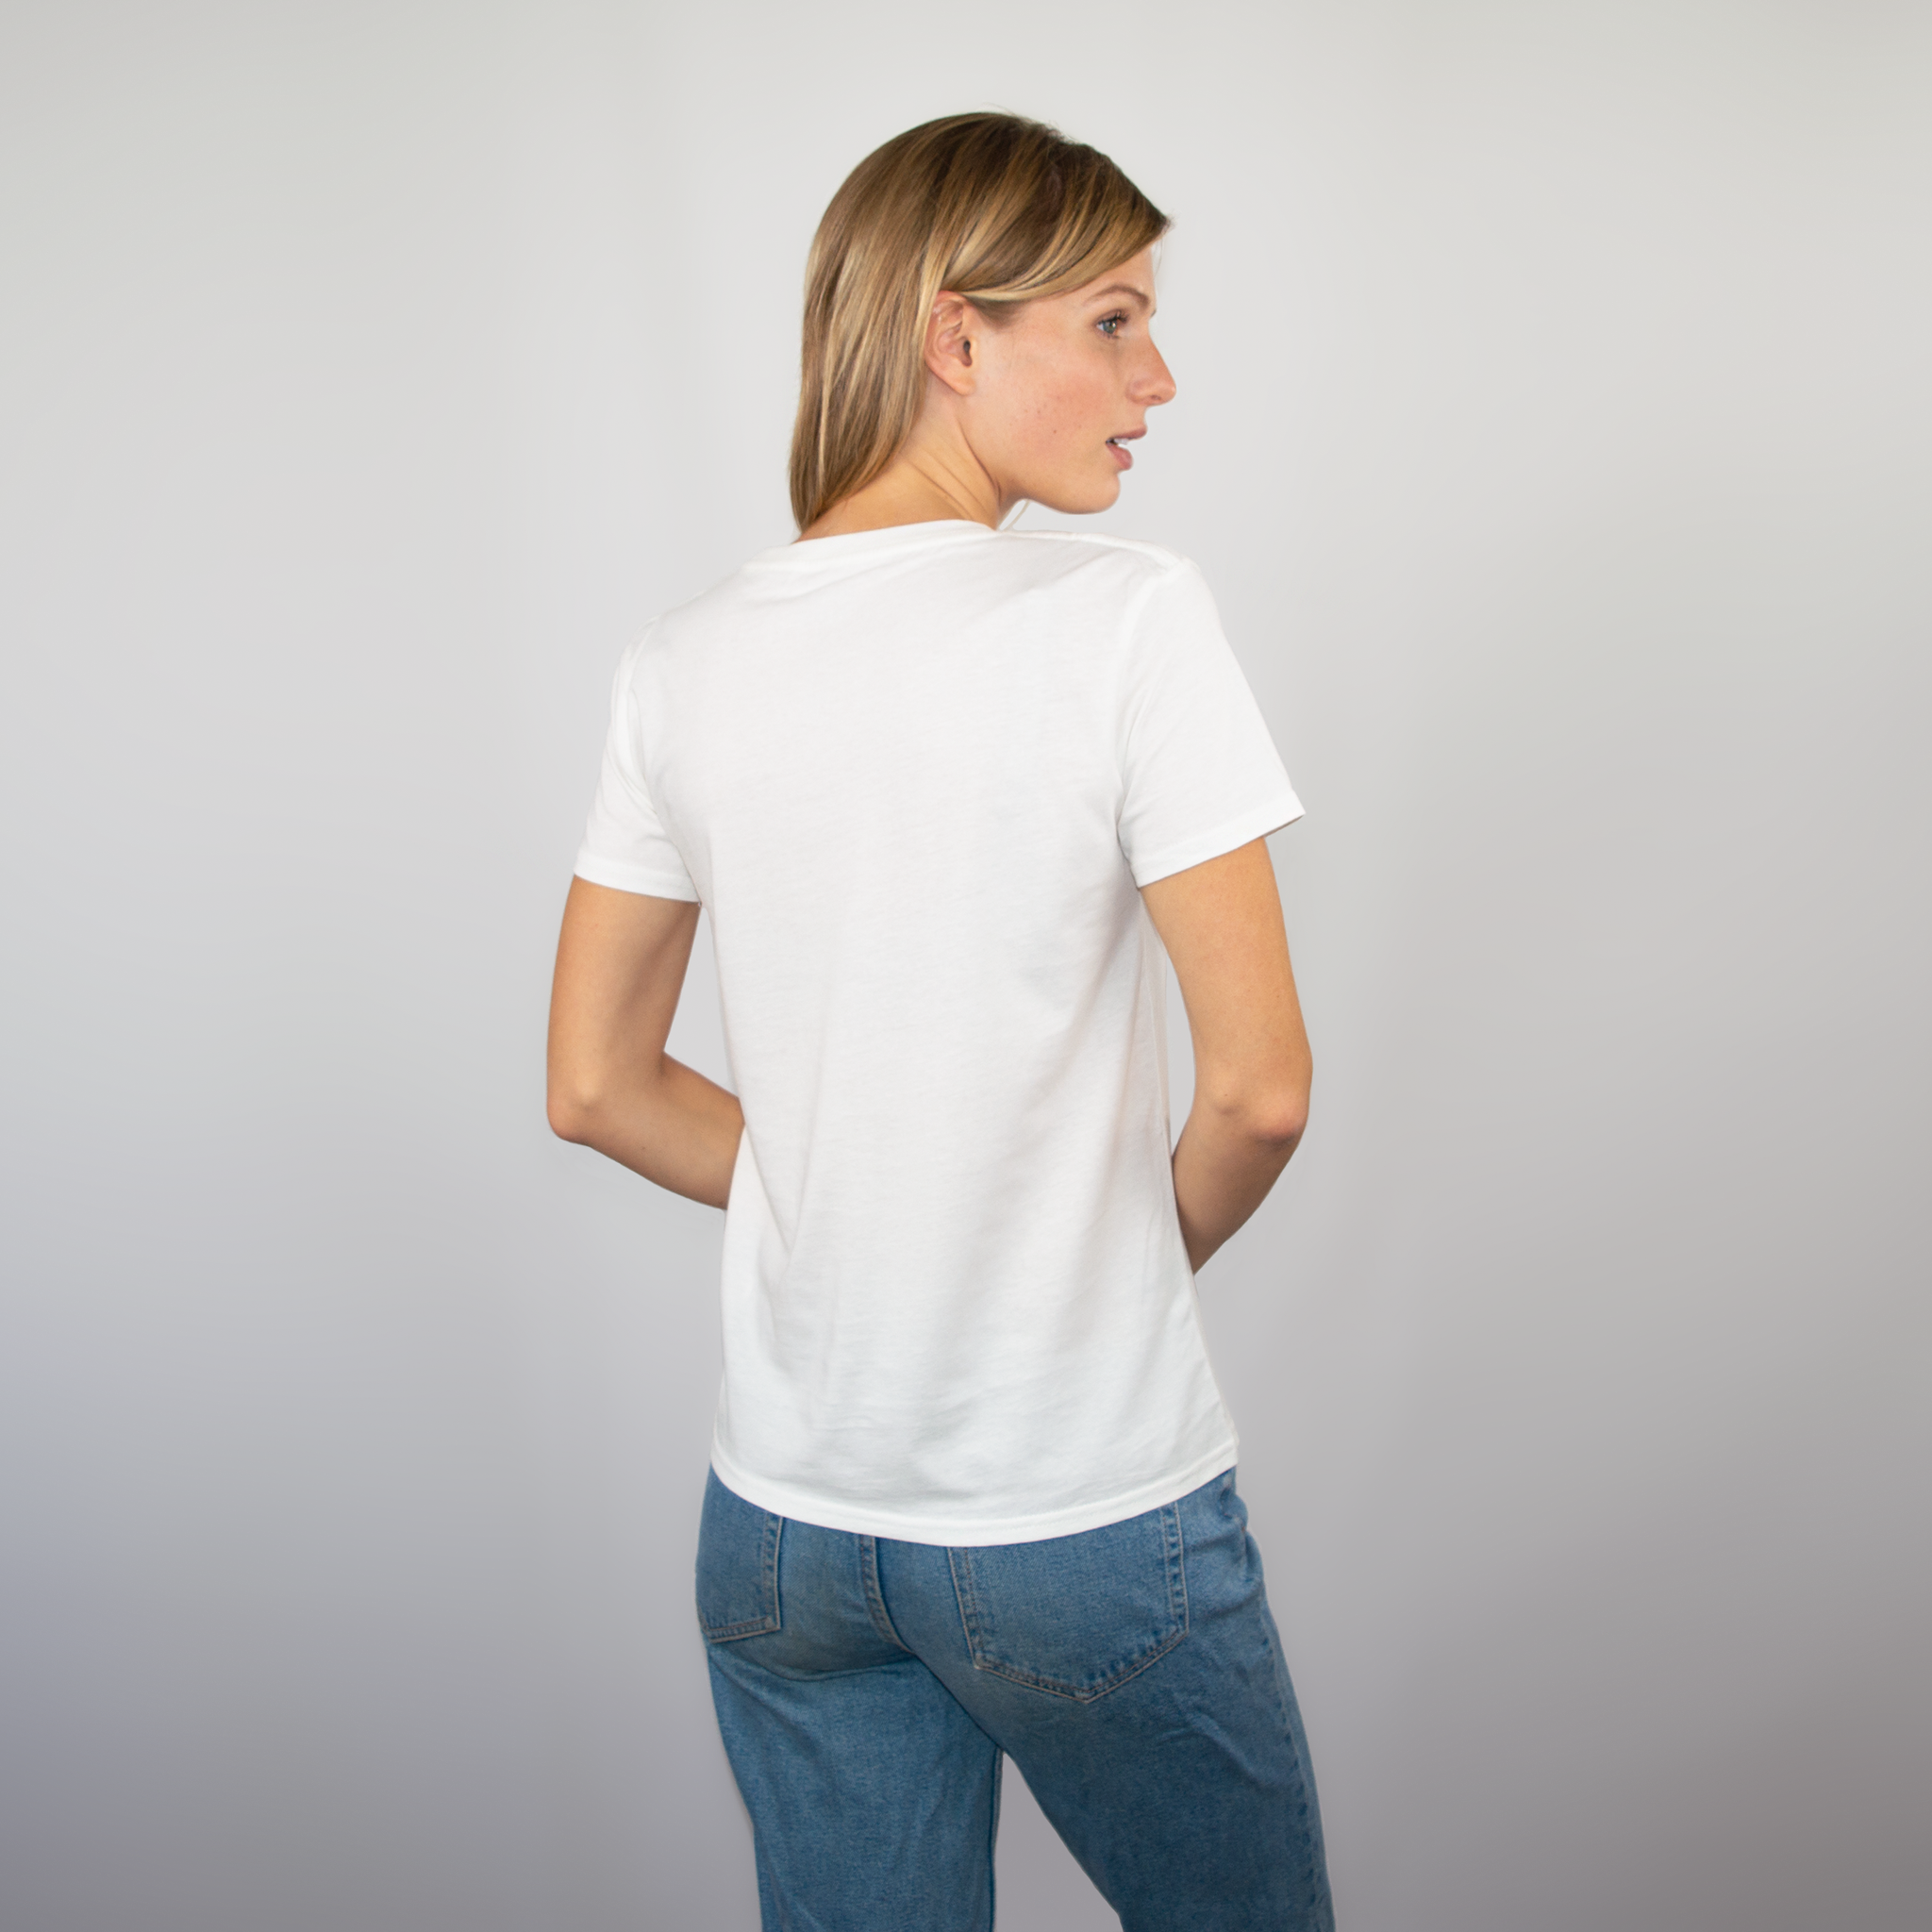 9d9563143508 ... Load image into Gallery viewer, T-shirt women off-white ...